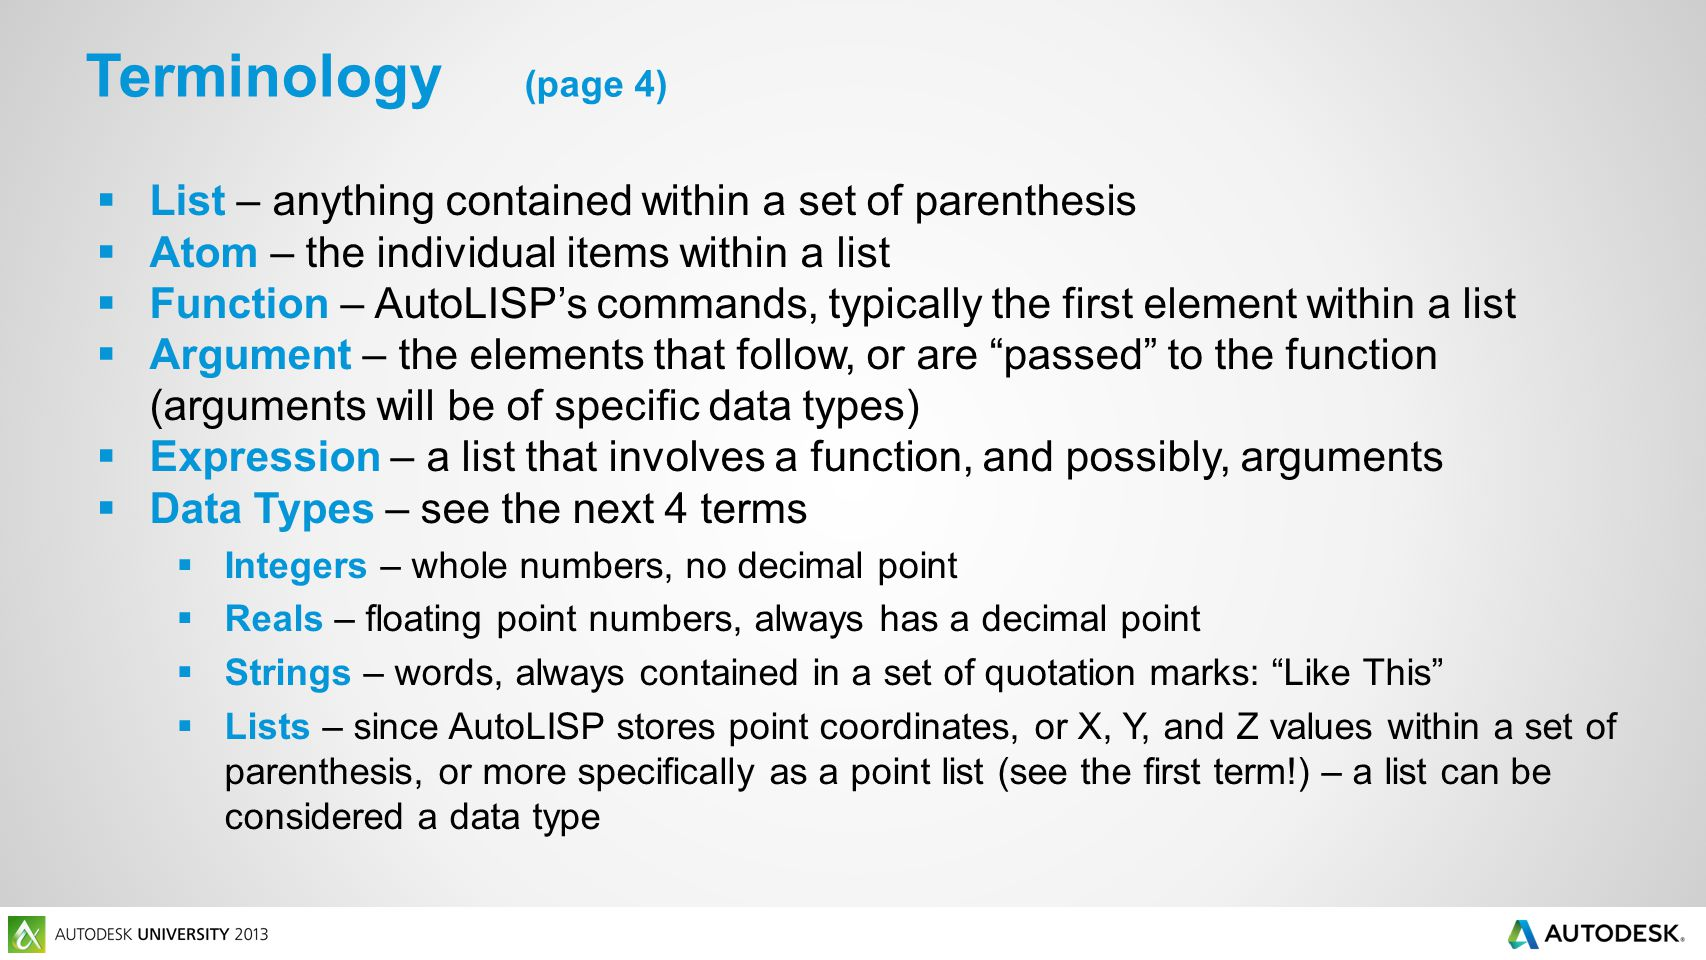 List – anything contained within a set of parenthesis Atom – the individual items within a list Function – AutoLISPs commands, typically the first element within a list Argument – the elements that follow, or are passed to the function (arguments will be of specific data types) Expression – a list that involves a function, and possibly, arguments Data Types – see the next 4 terms Integers – whole numbers, no decimal point Reals – floating point numbers, always has a decimal point Strings – words, always contained in a set of quotation marks: Like This Lists – since AutoLISP stores point coordinates, or X, Y, and Z values within a set of parenthesis, or more specifically as a point list (see the first term!) – a list can be considered a data type Terminology (page 4)